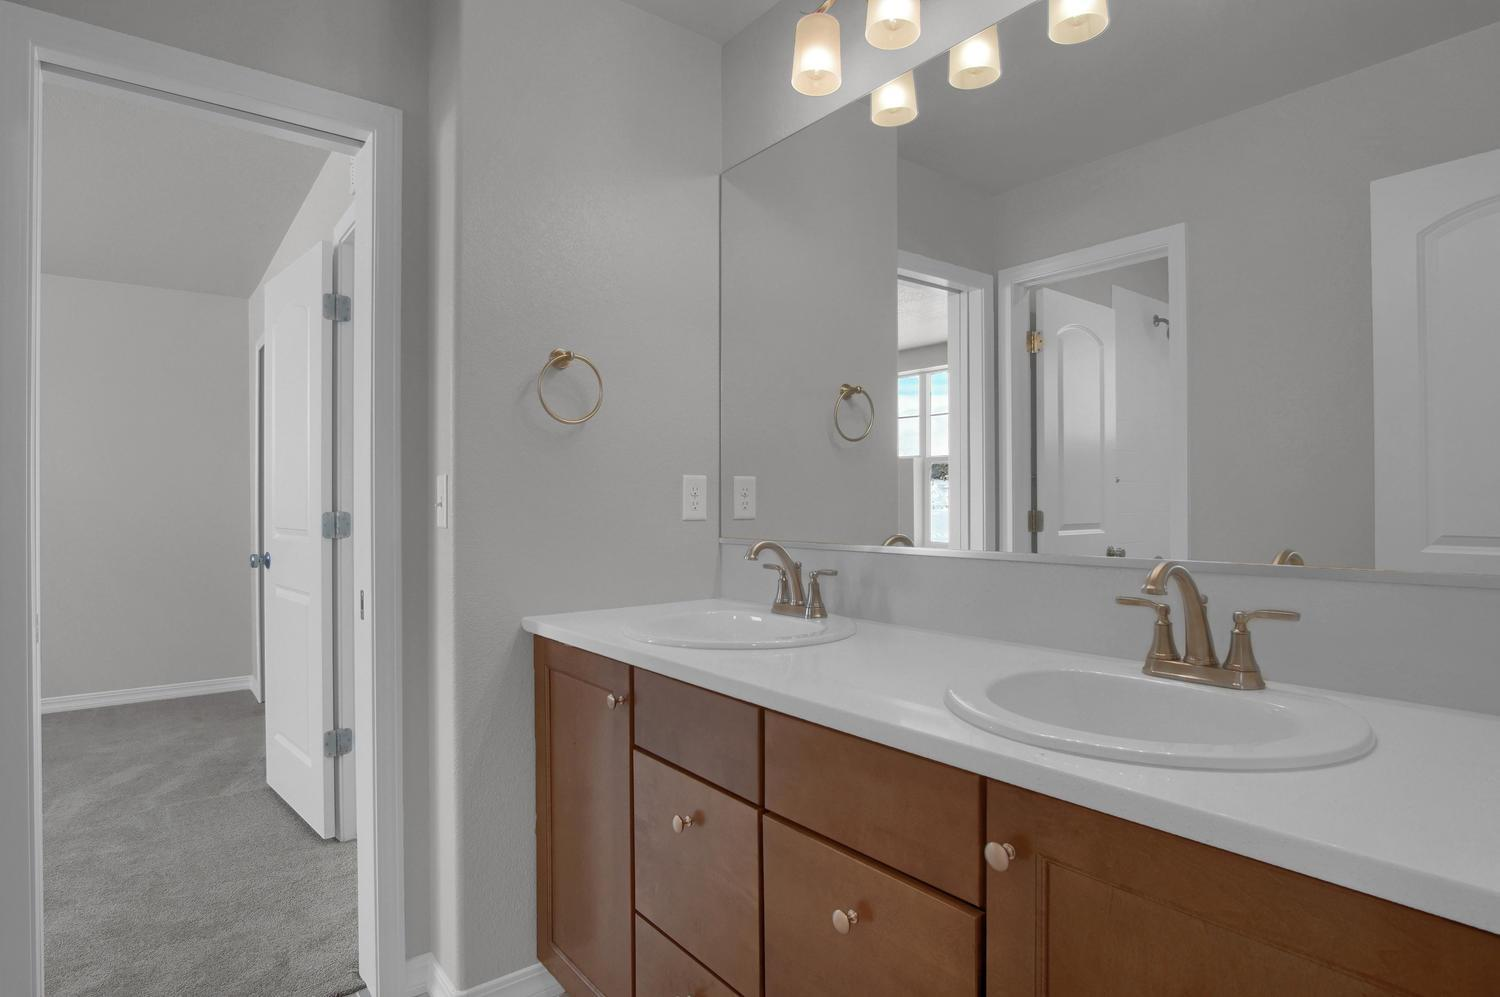 Bathroom featured in the Windom By Keller Homes, A Toll Bros. Co. in Colorado Springs, CO